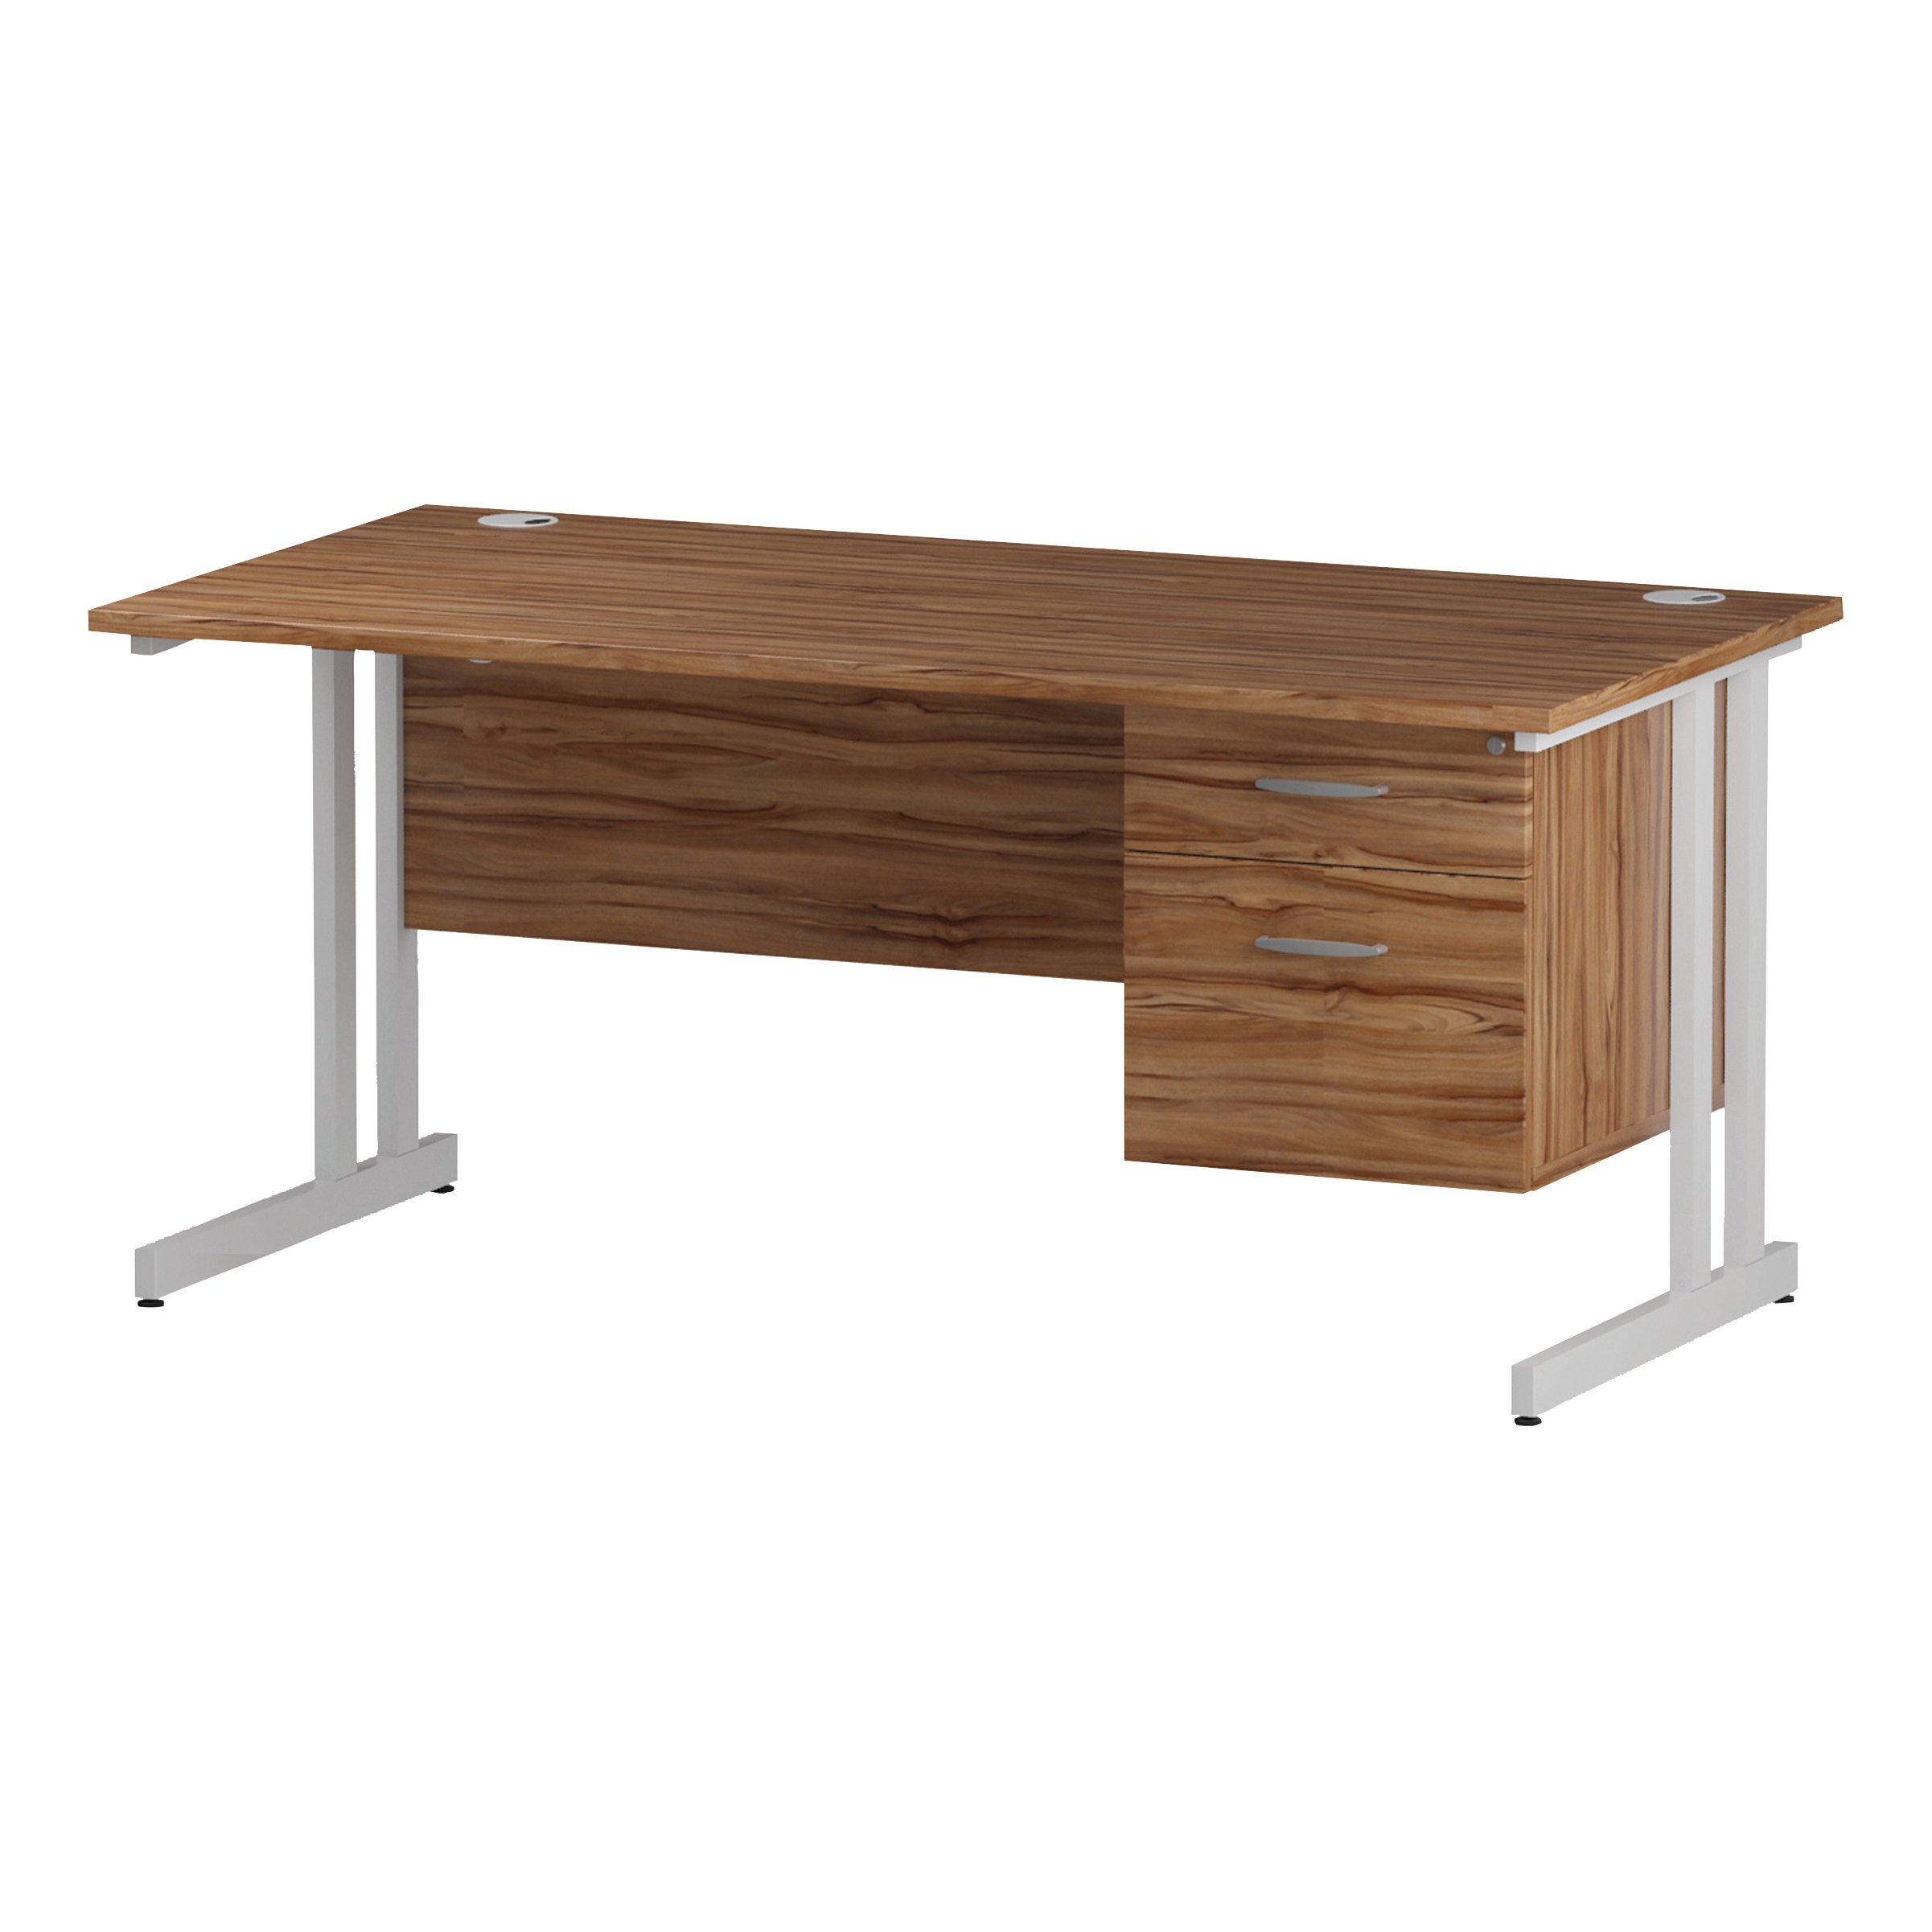 Trexus Rectangular Desk White Cantilever Leg 1600x800mm Fixed Pedestal 2 Drawers Walnut Ref I001925